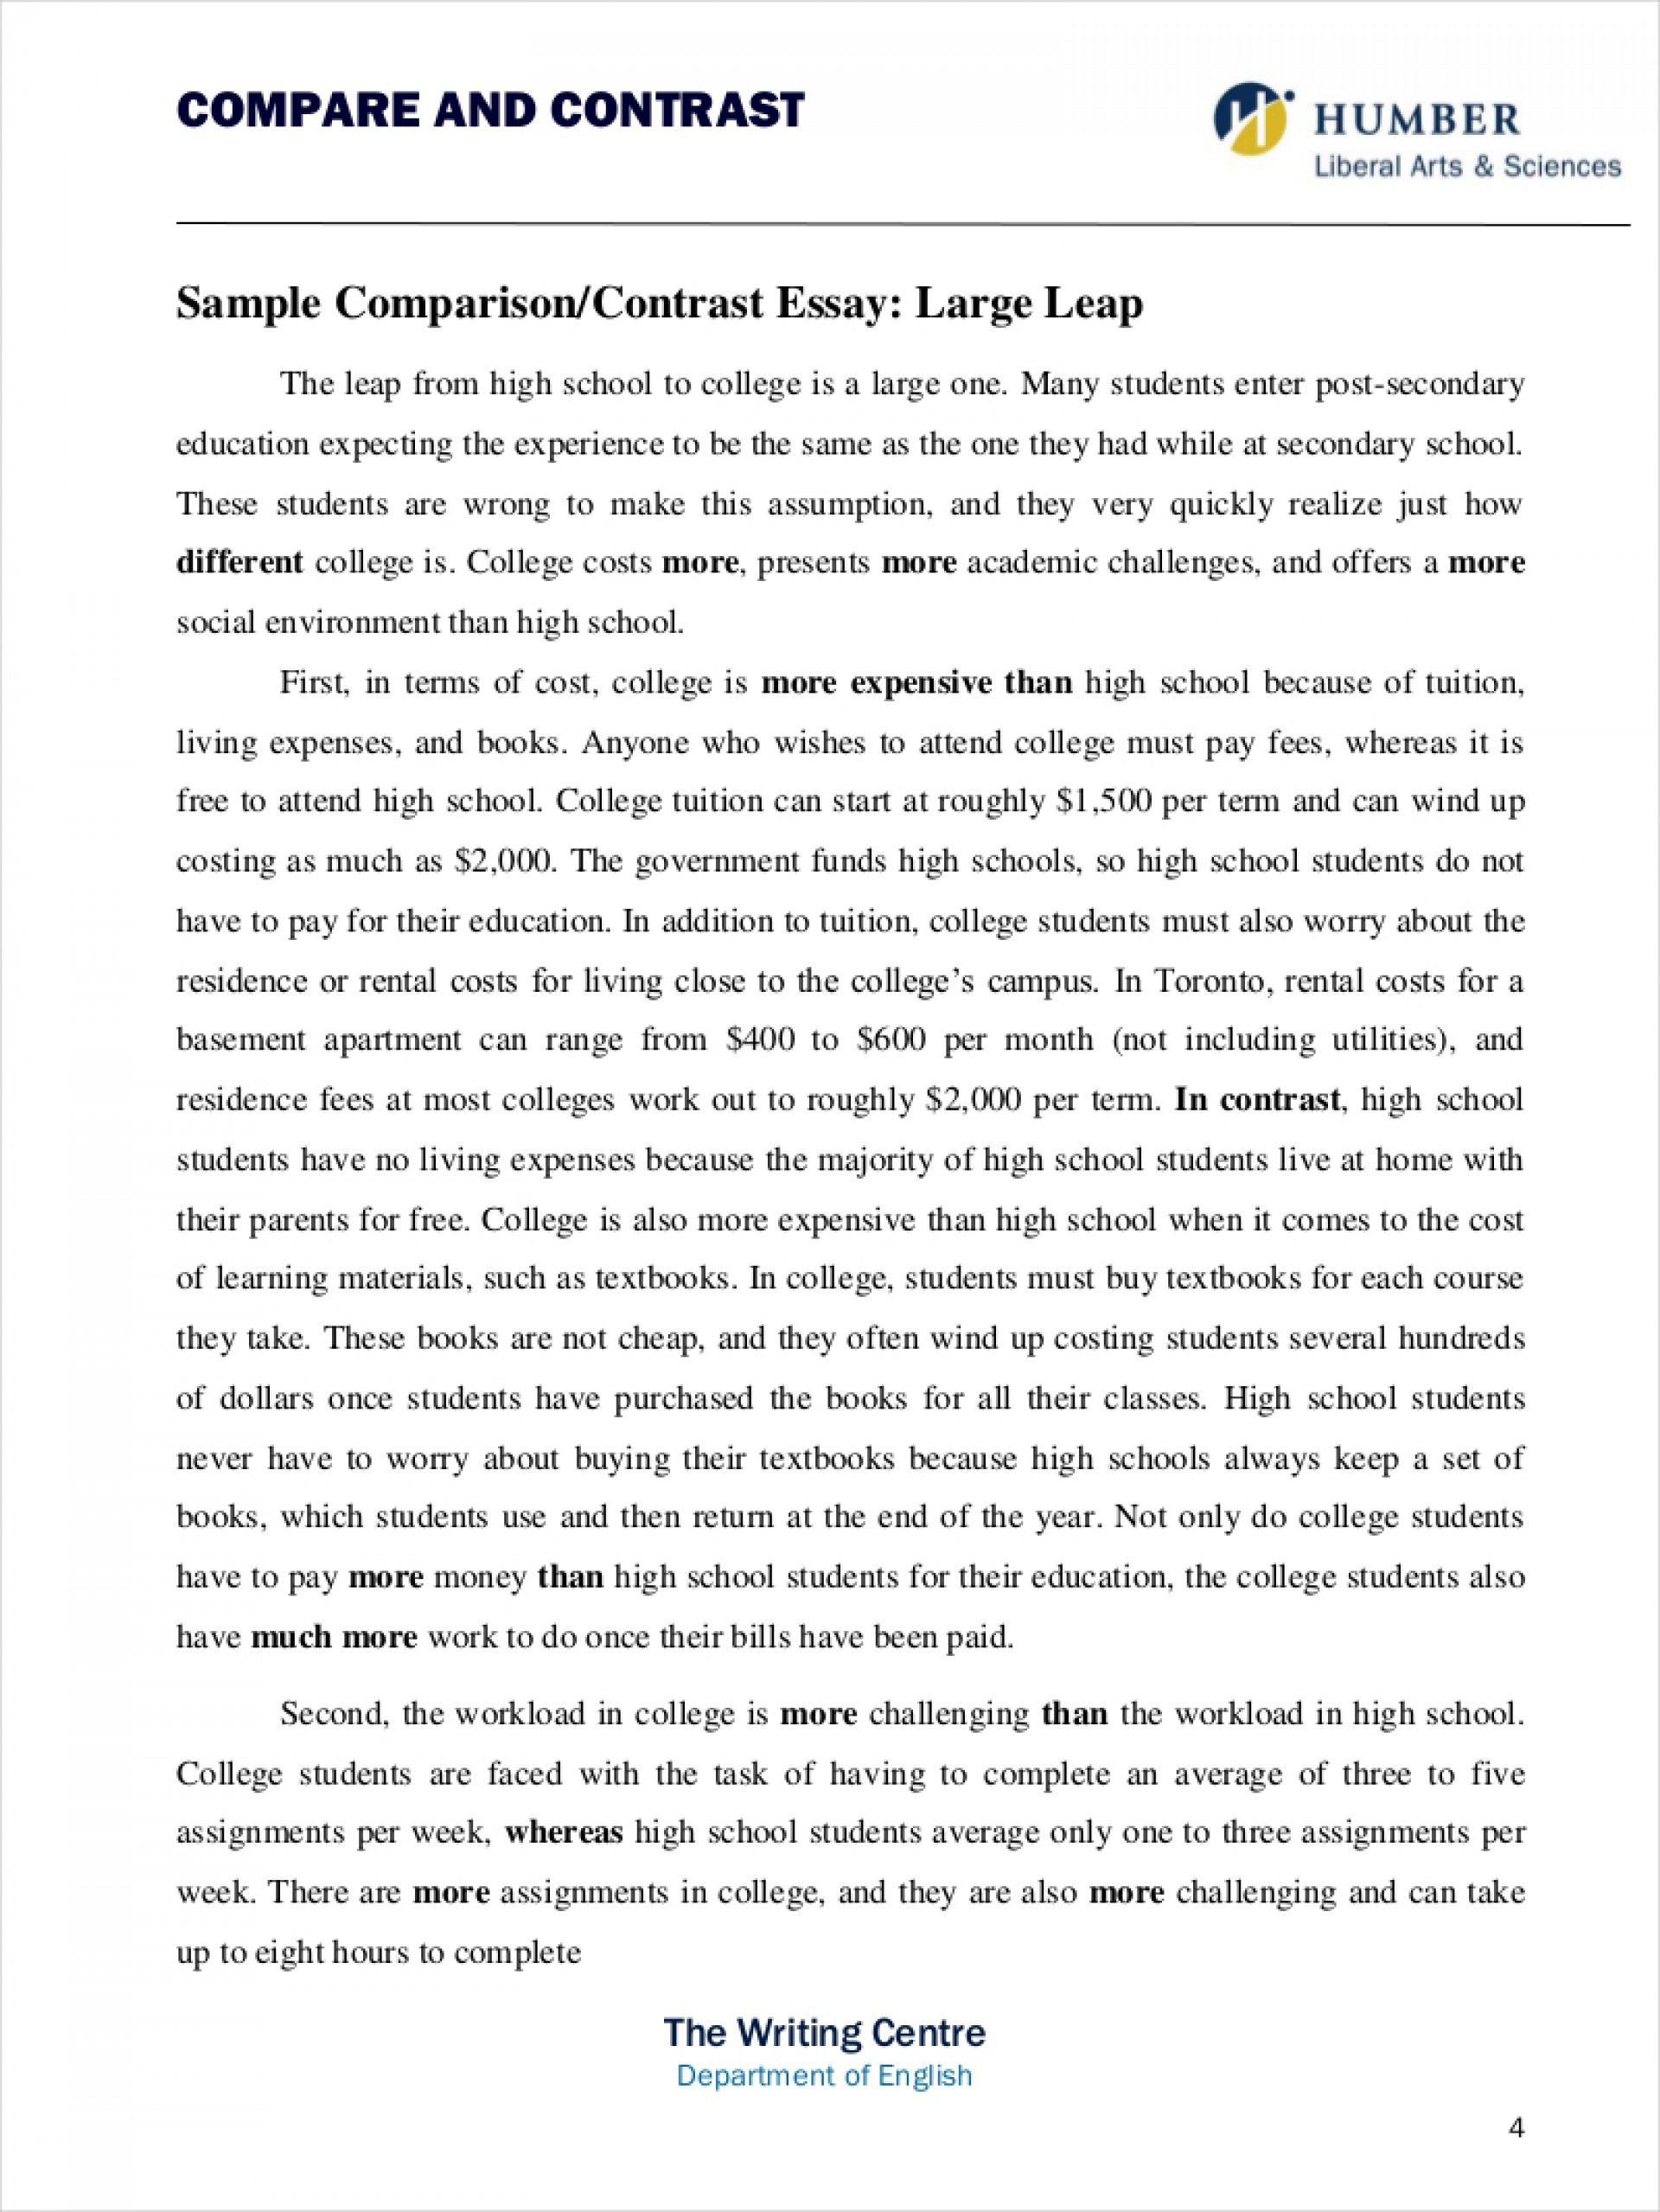 009 Comparison And Contrast Essay Comparative Samples Free Pdf Format Download Throughout Compare Examples Thesis Coles Thecolossus Co Within Ex 5th Grade 4th 6th 3rd High Awful Rubric Template Word 1920